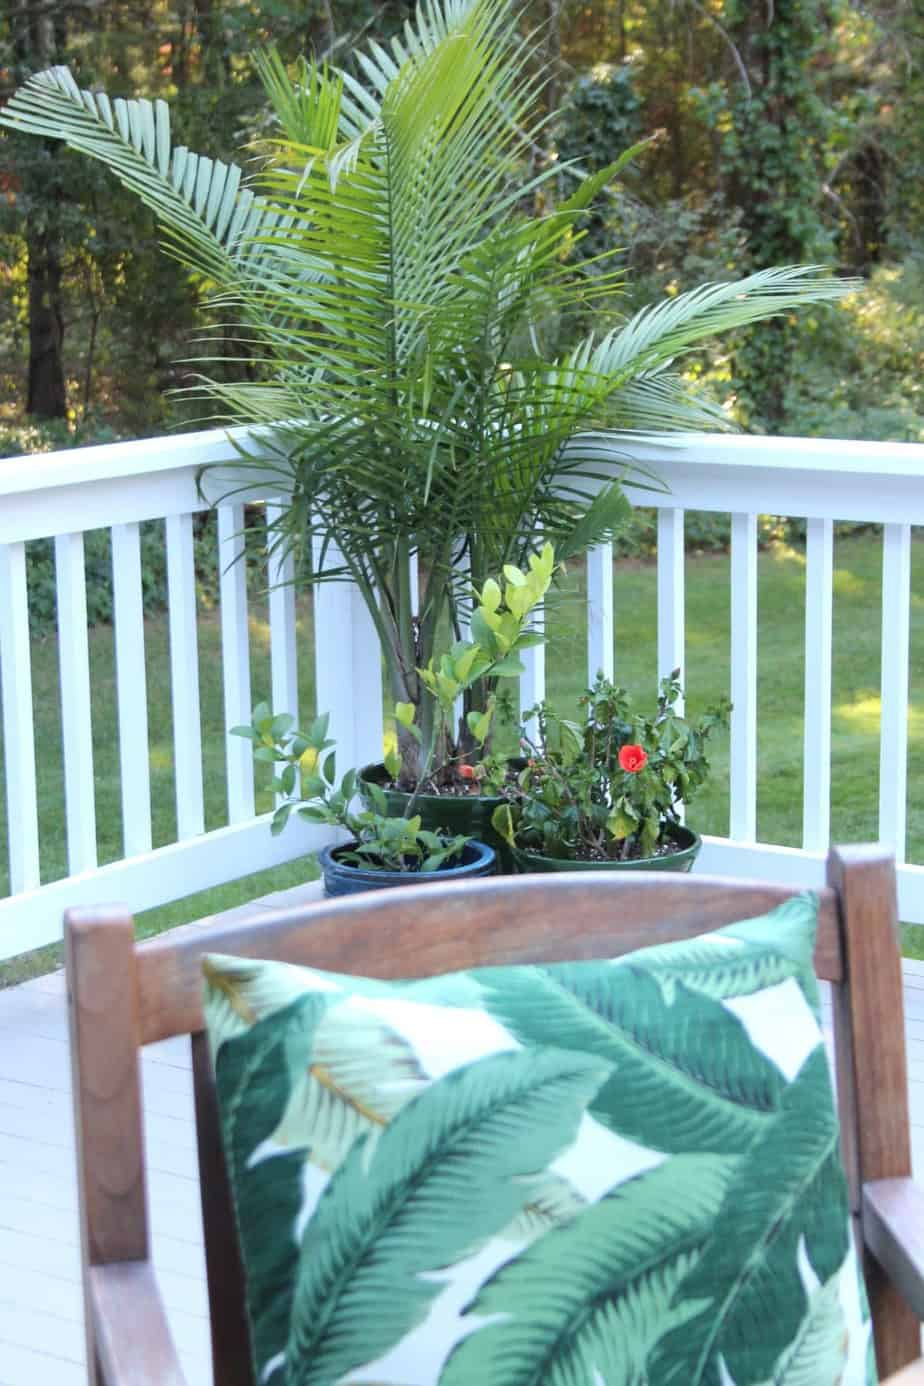 A potted palm tree on a deck.